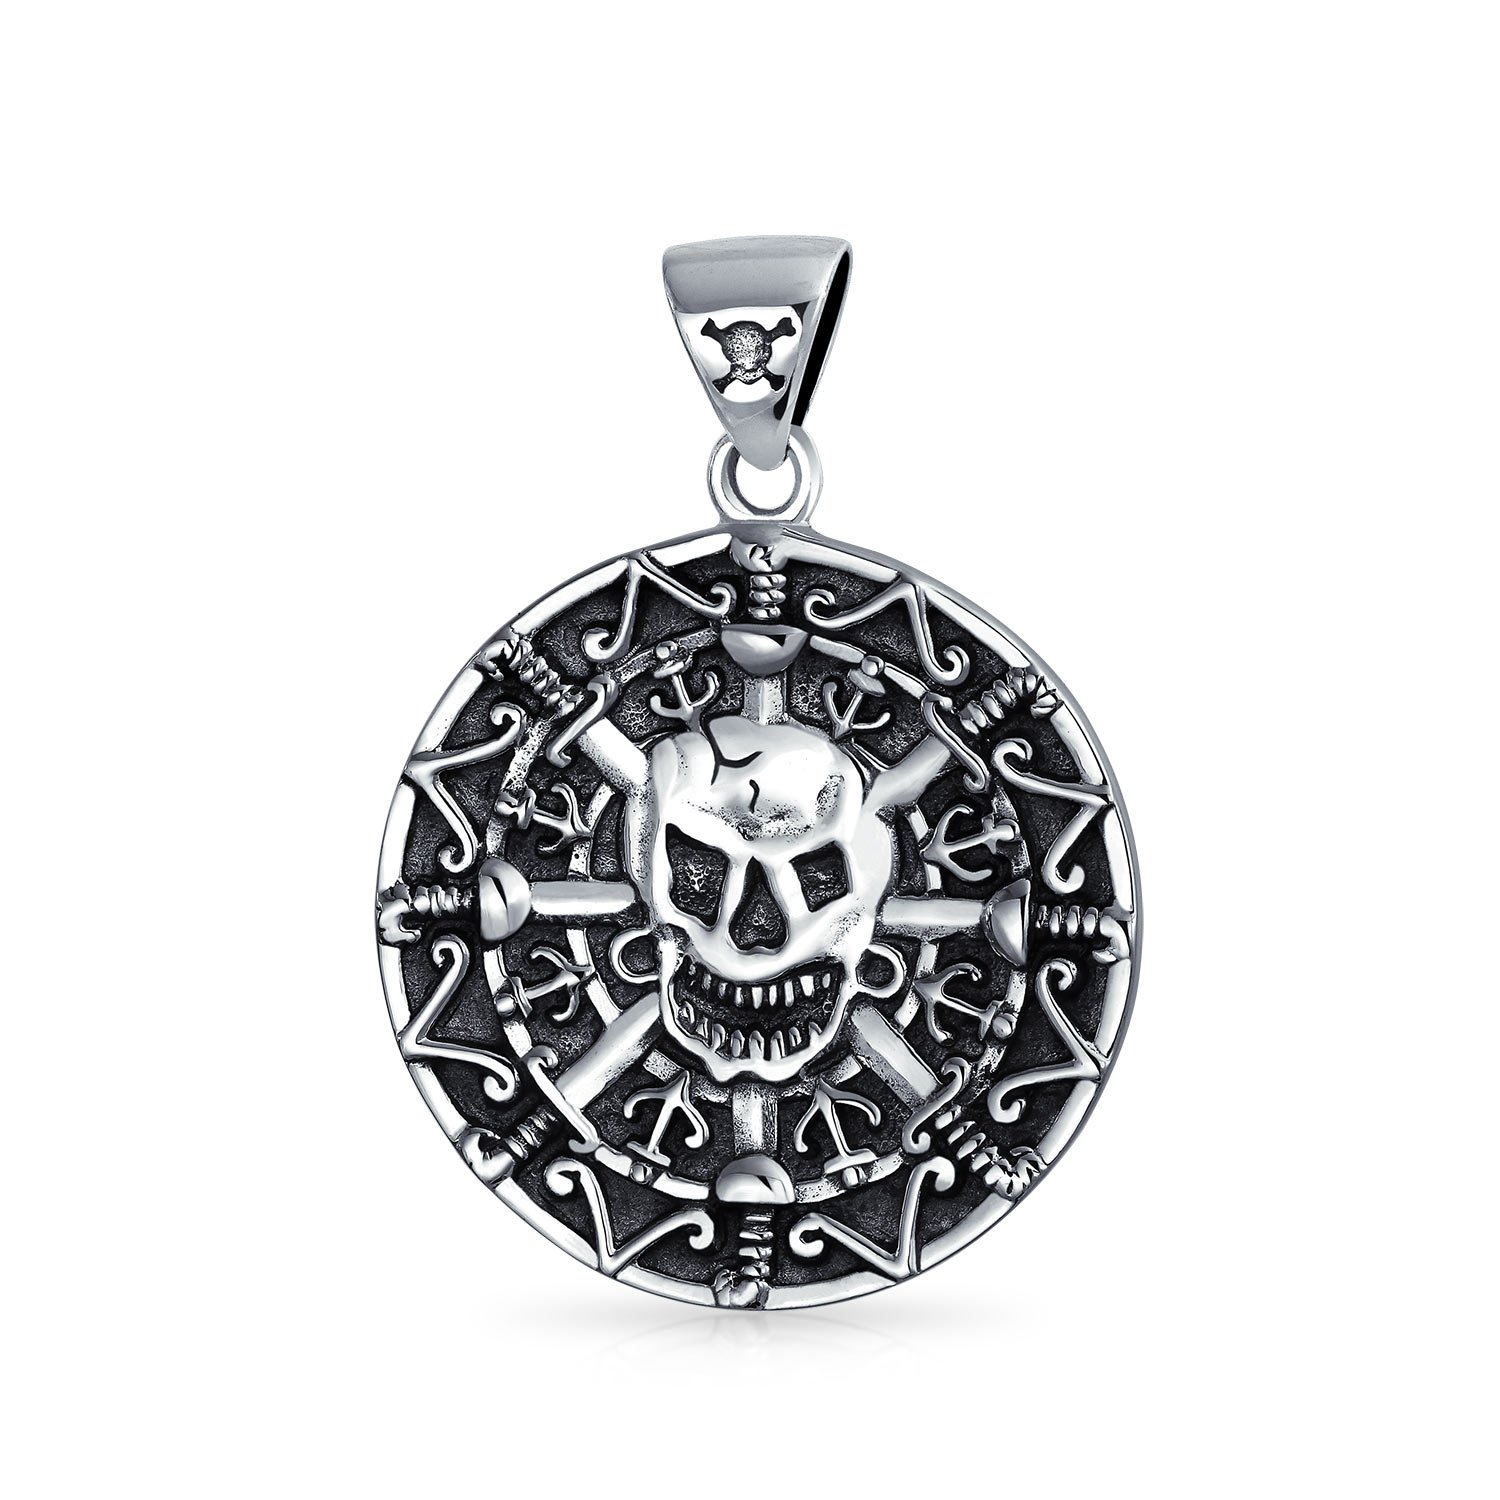 Deluxe Adult Costumes - Men's sterling silver Aztec medallion coin pirate skull pendant